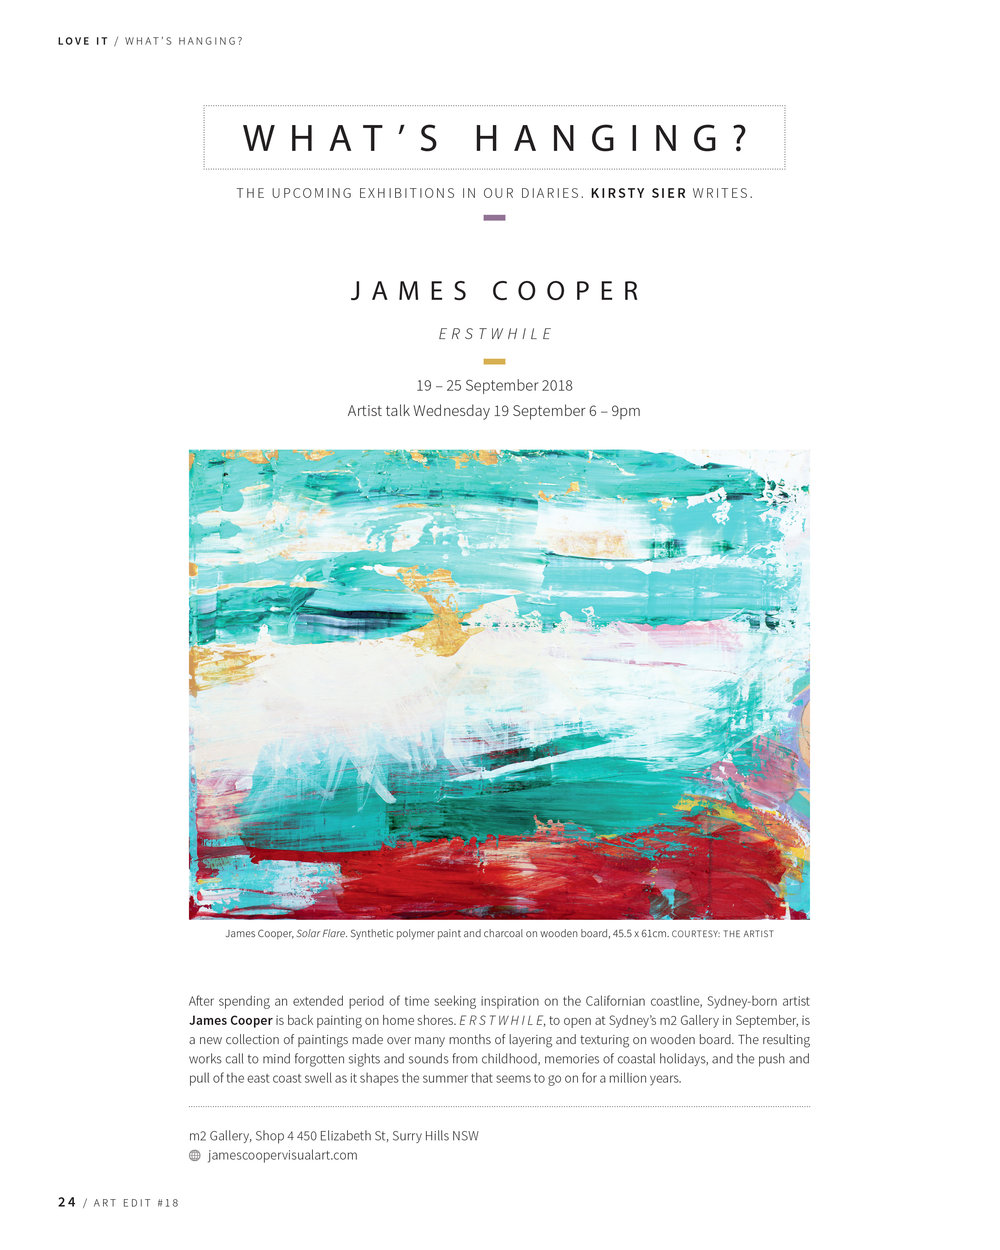 ArtEdit-Magazine-Erstwhile-Whats-Hanging-James-Cooper-Artist.jpg